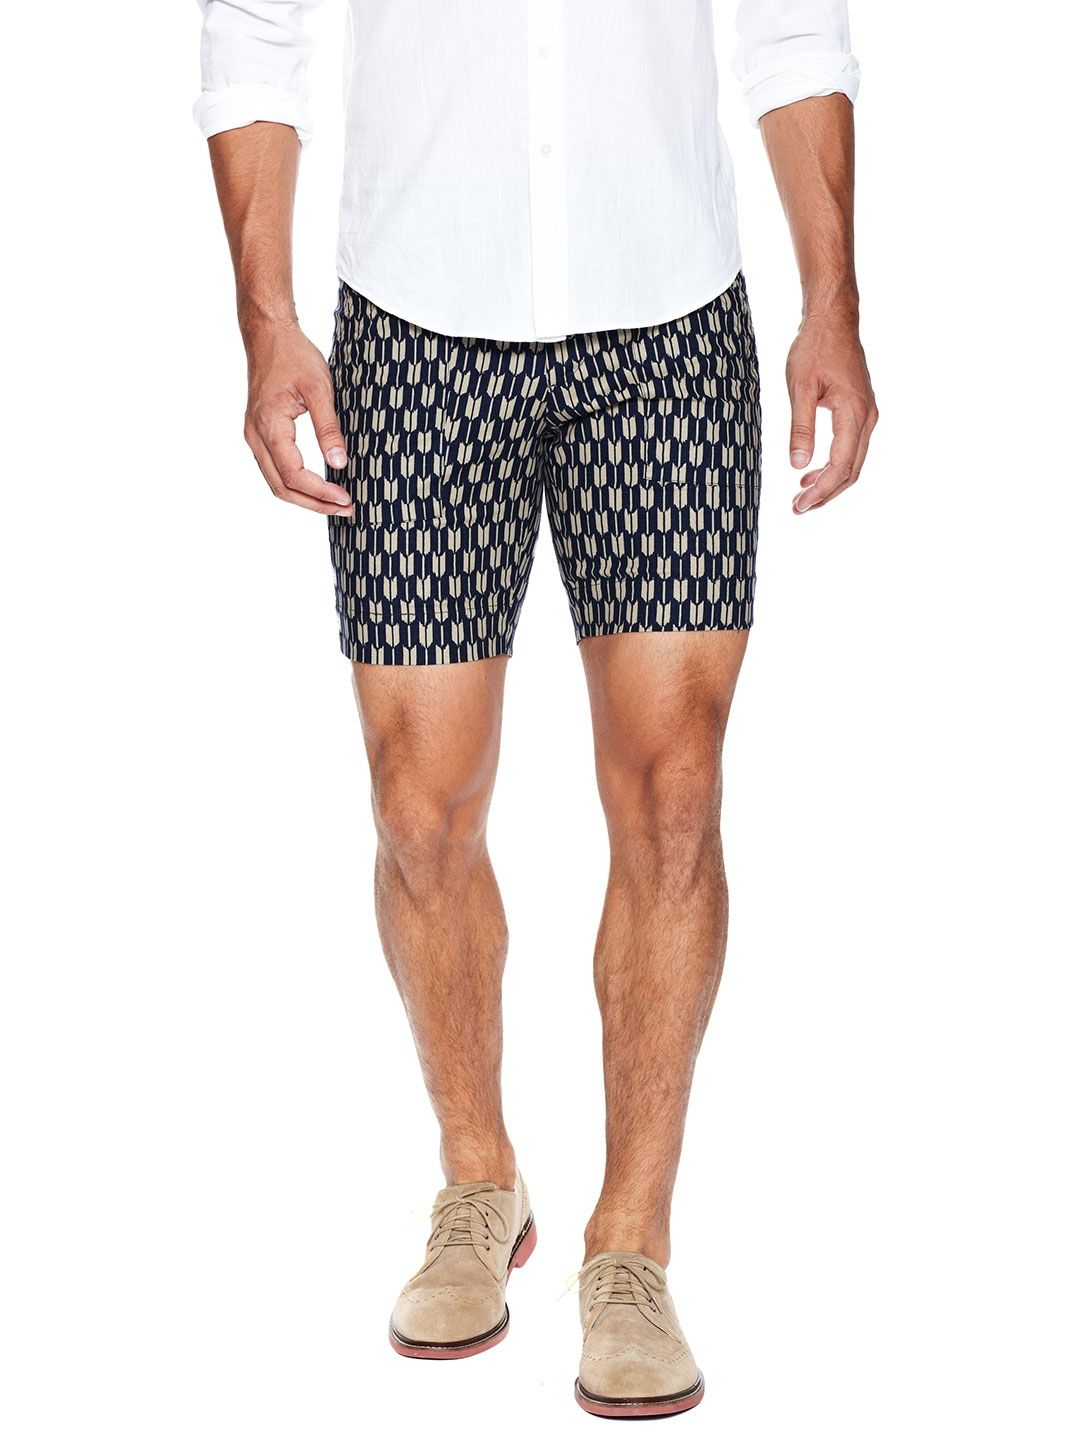 ovadia sons sho shorts - HD 1080×1440